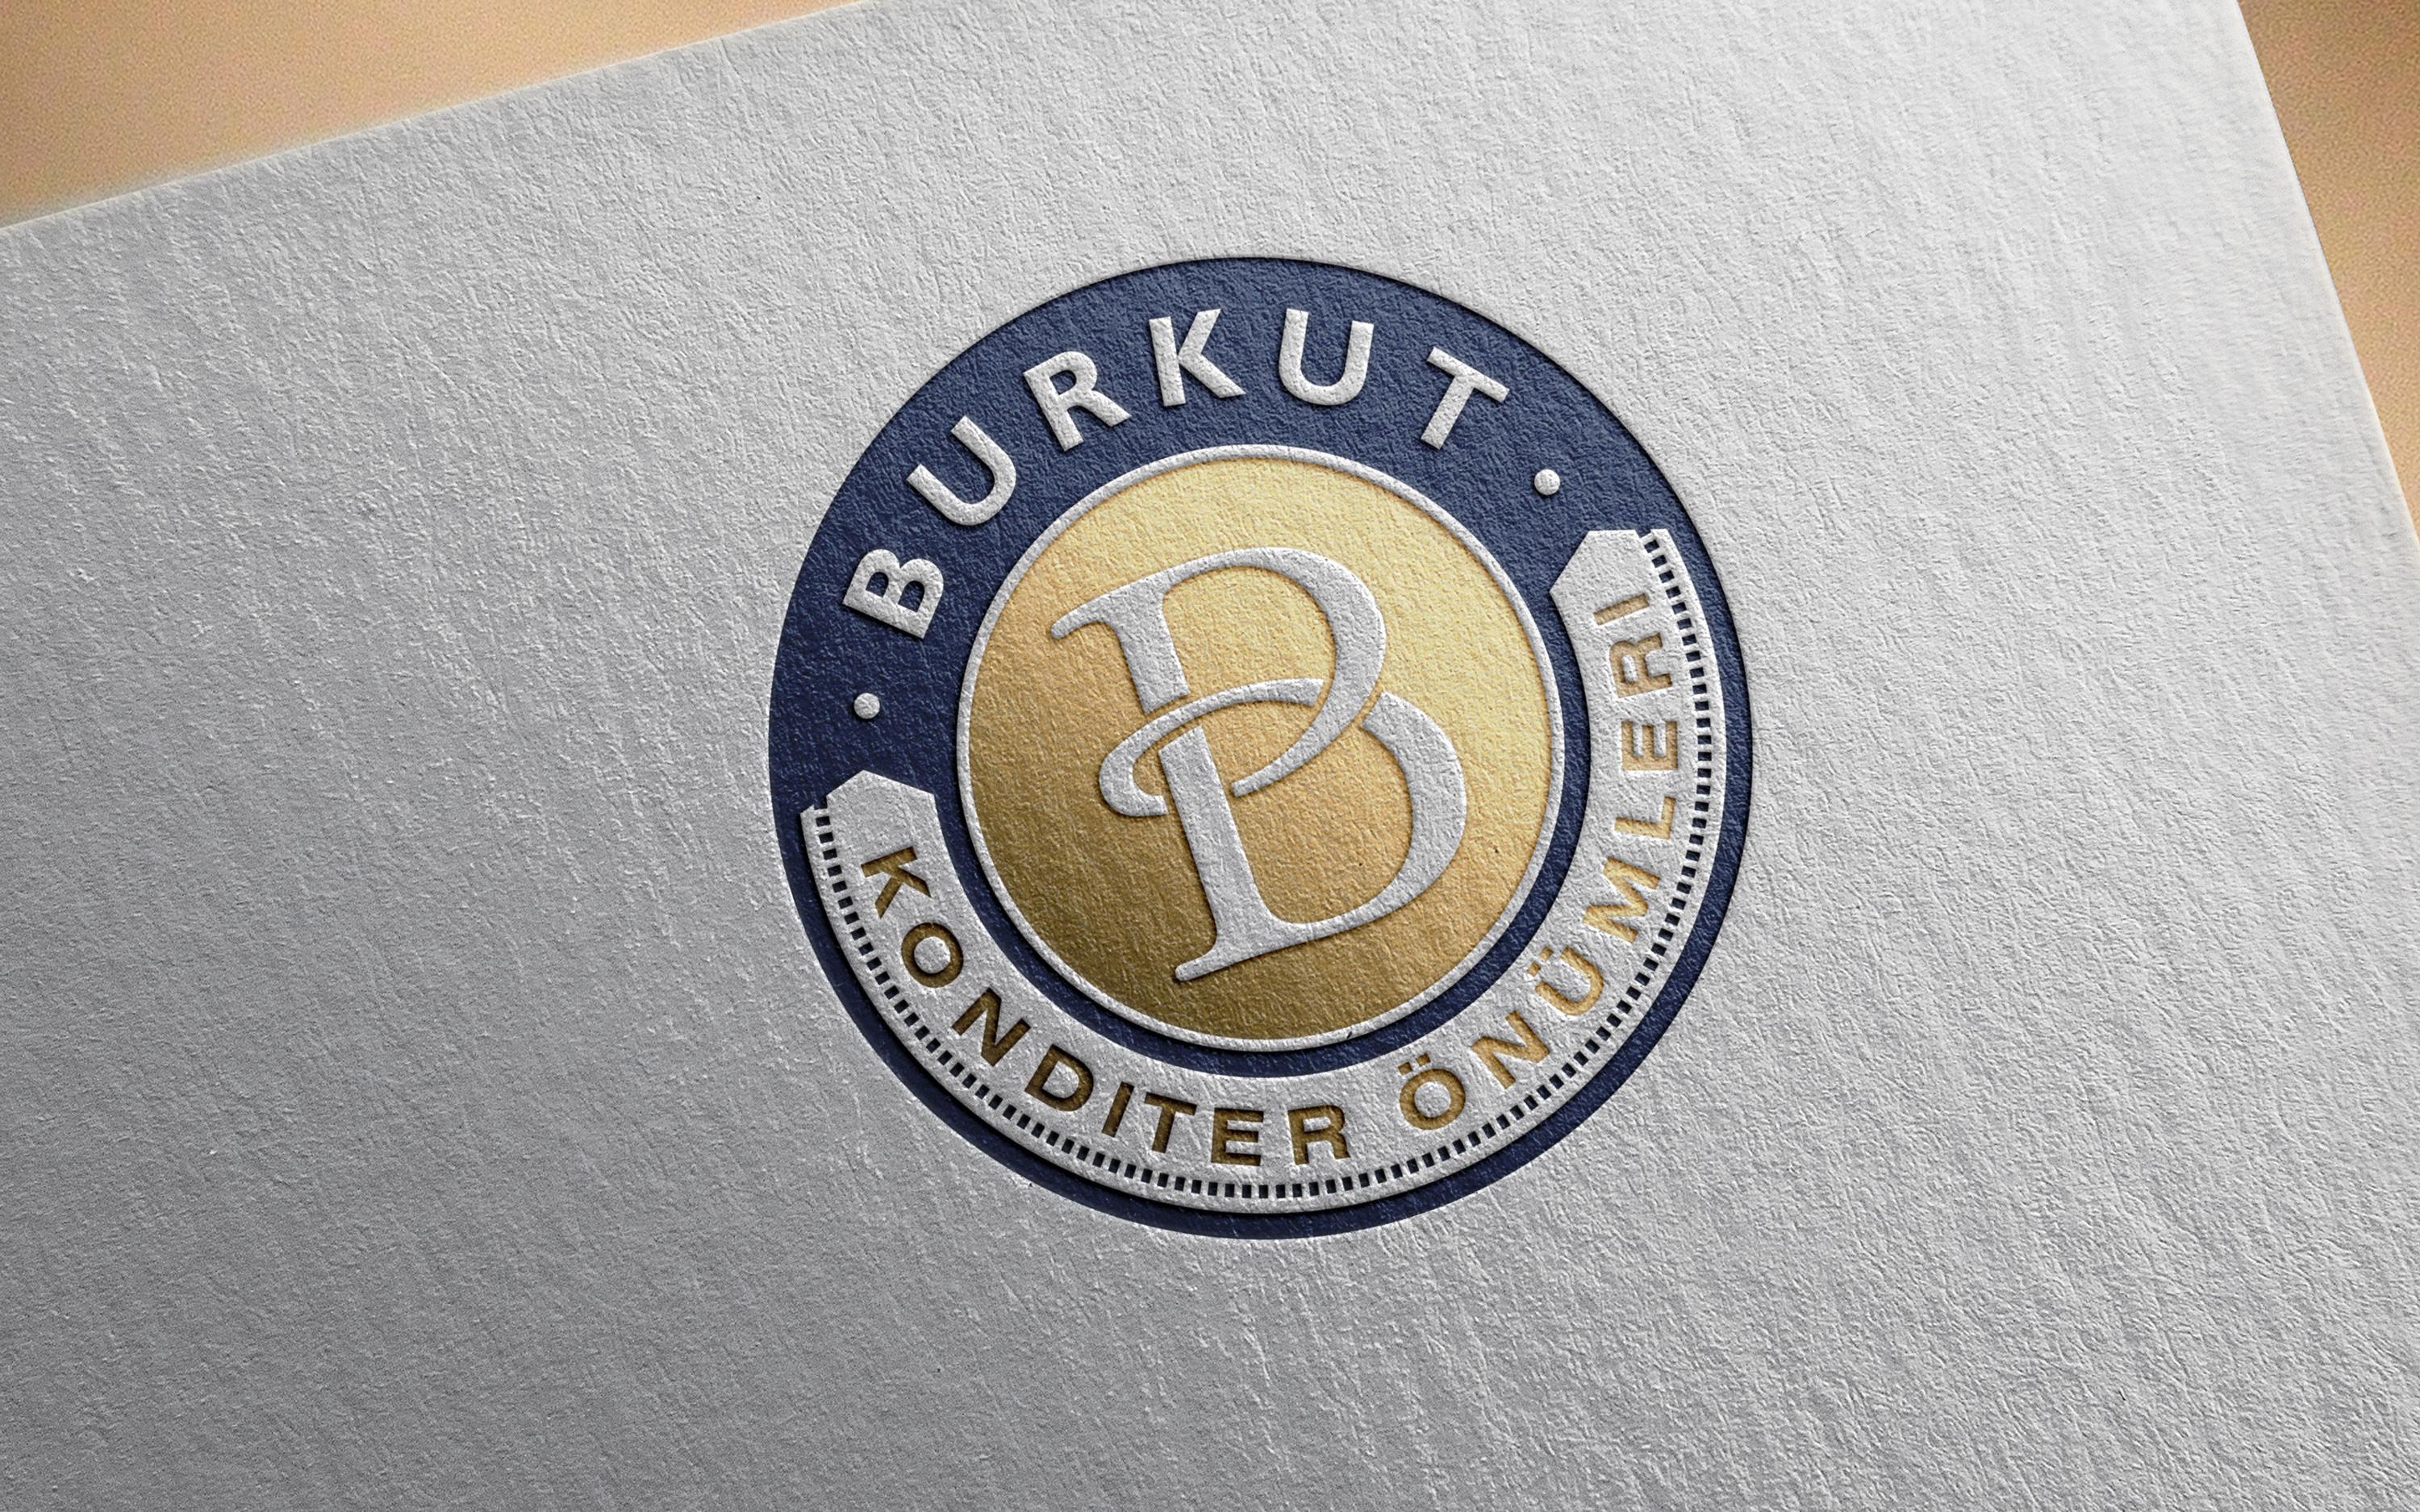 Burkut. Logo for a candy company